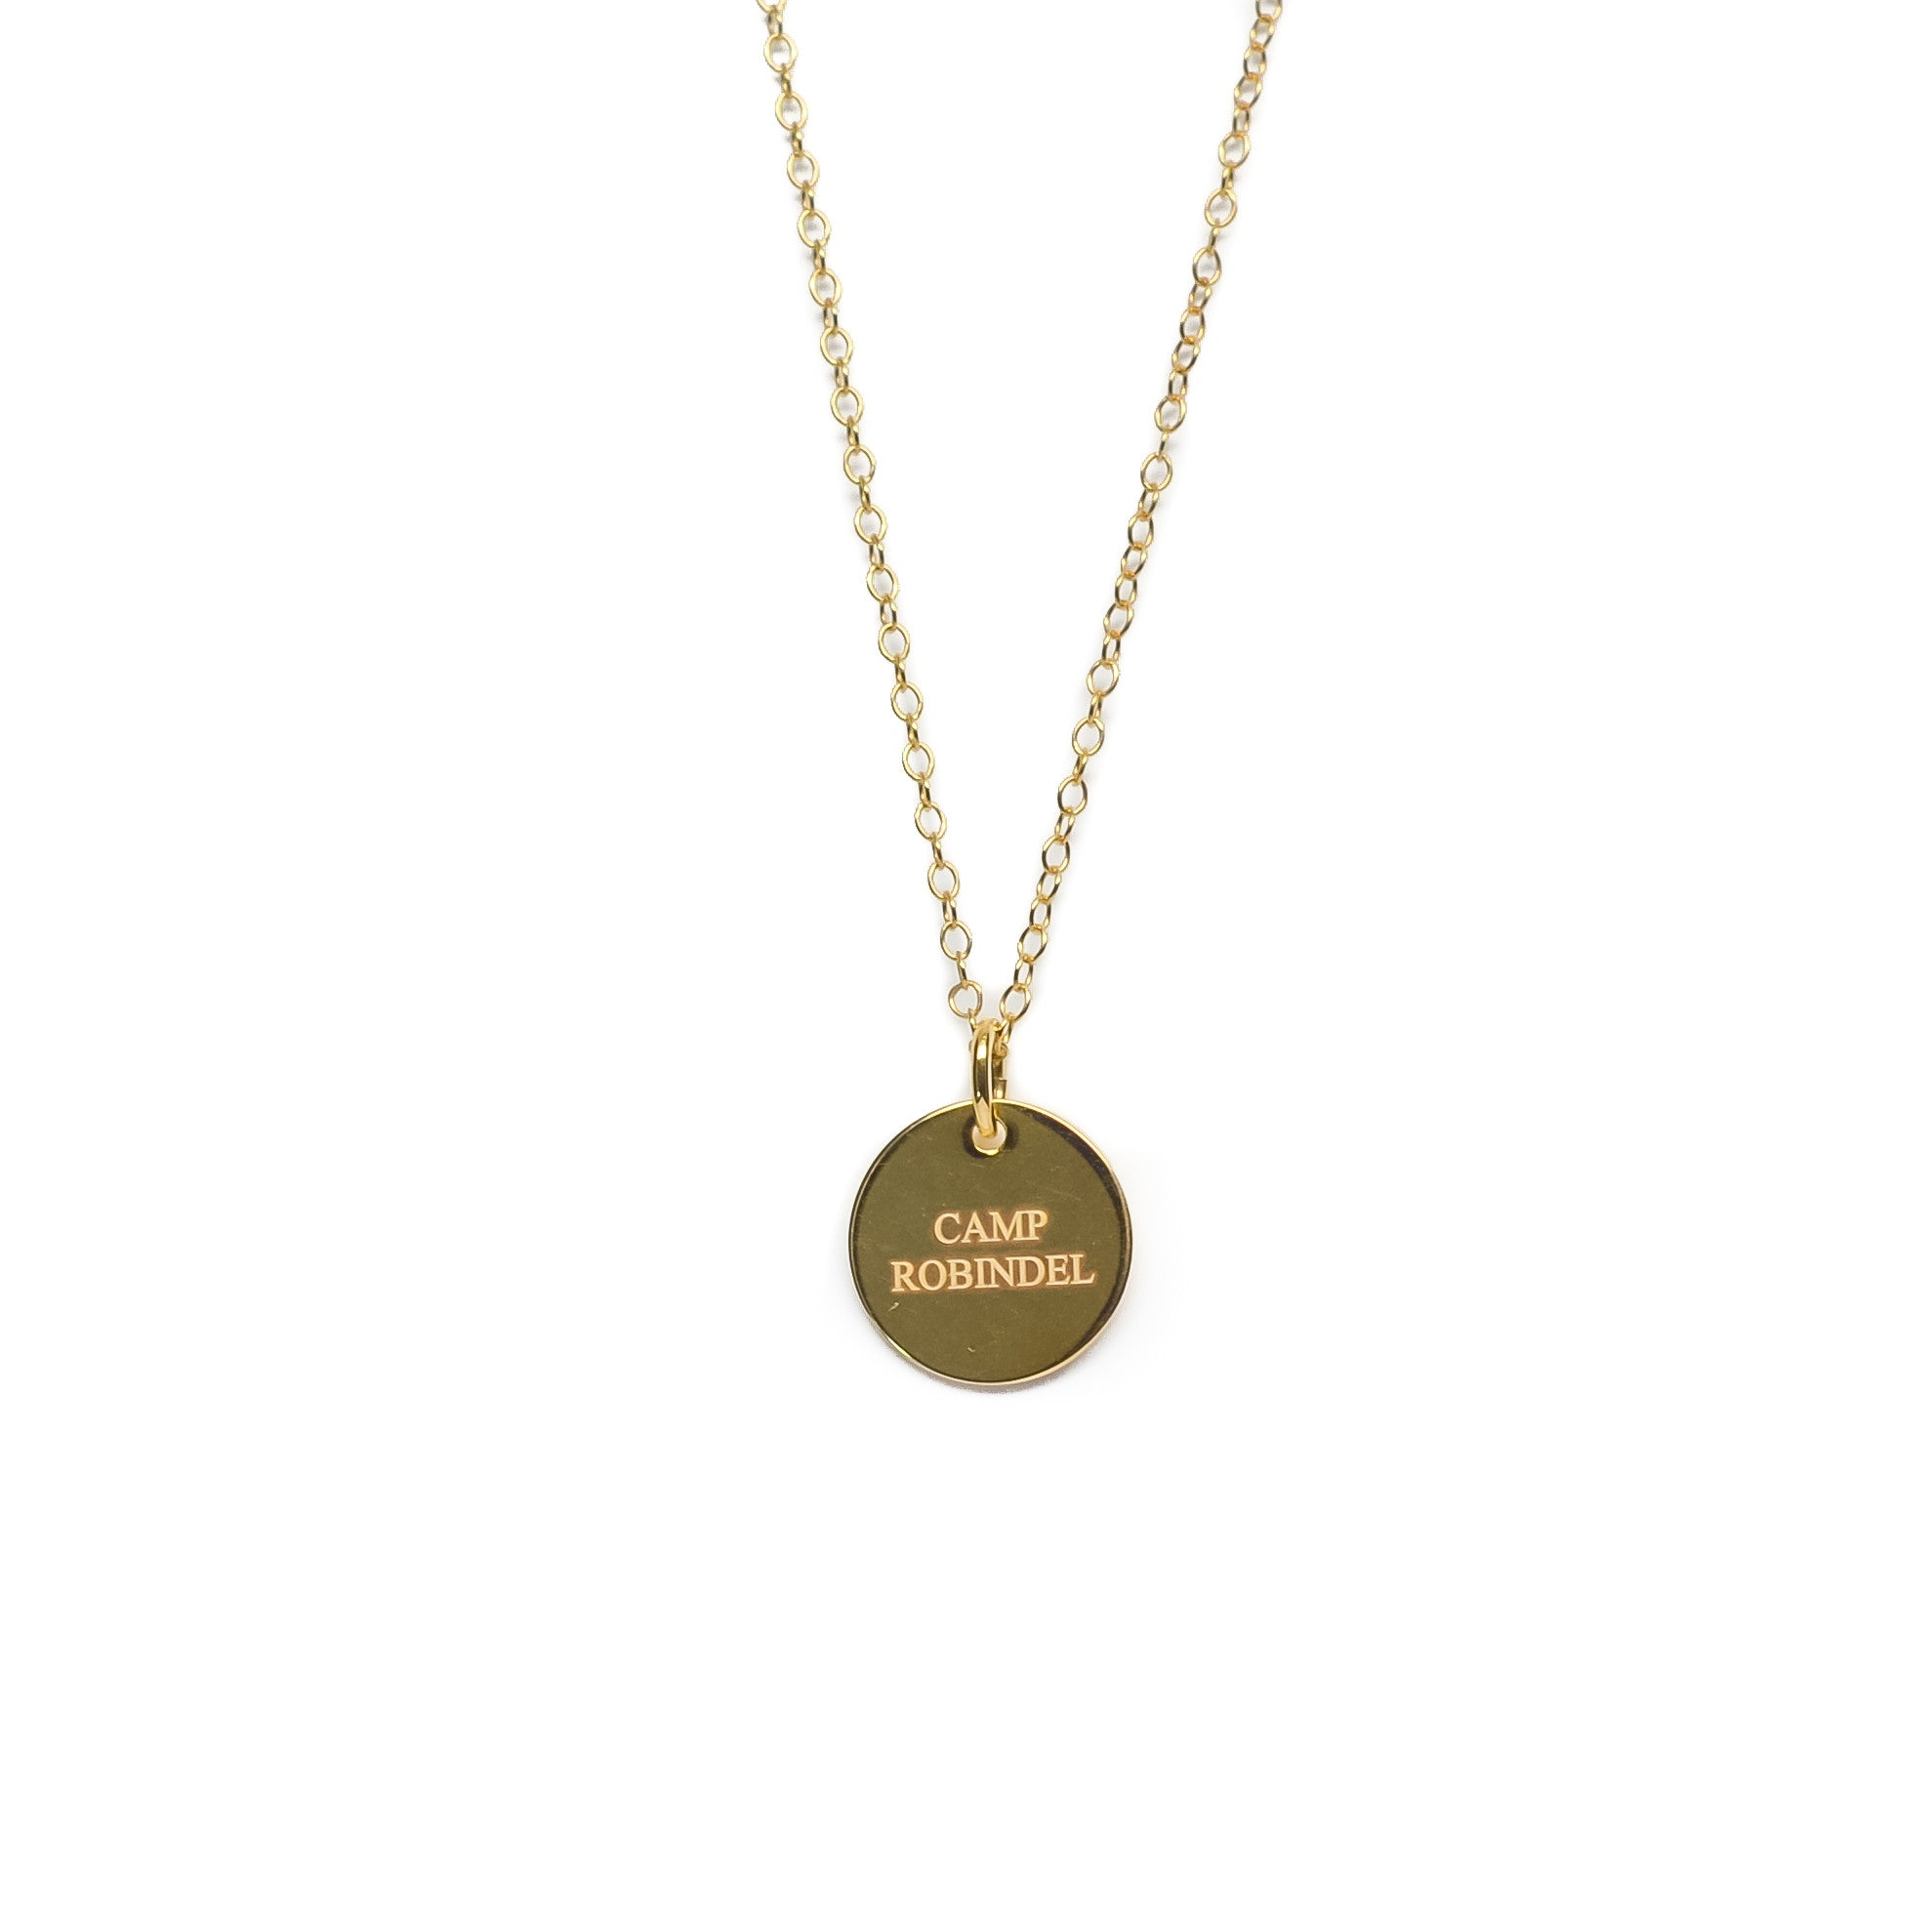 Camp Necklace